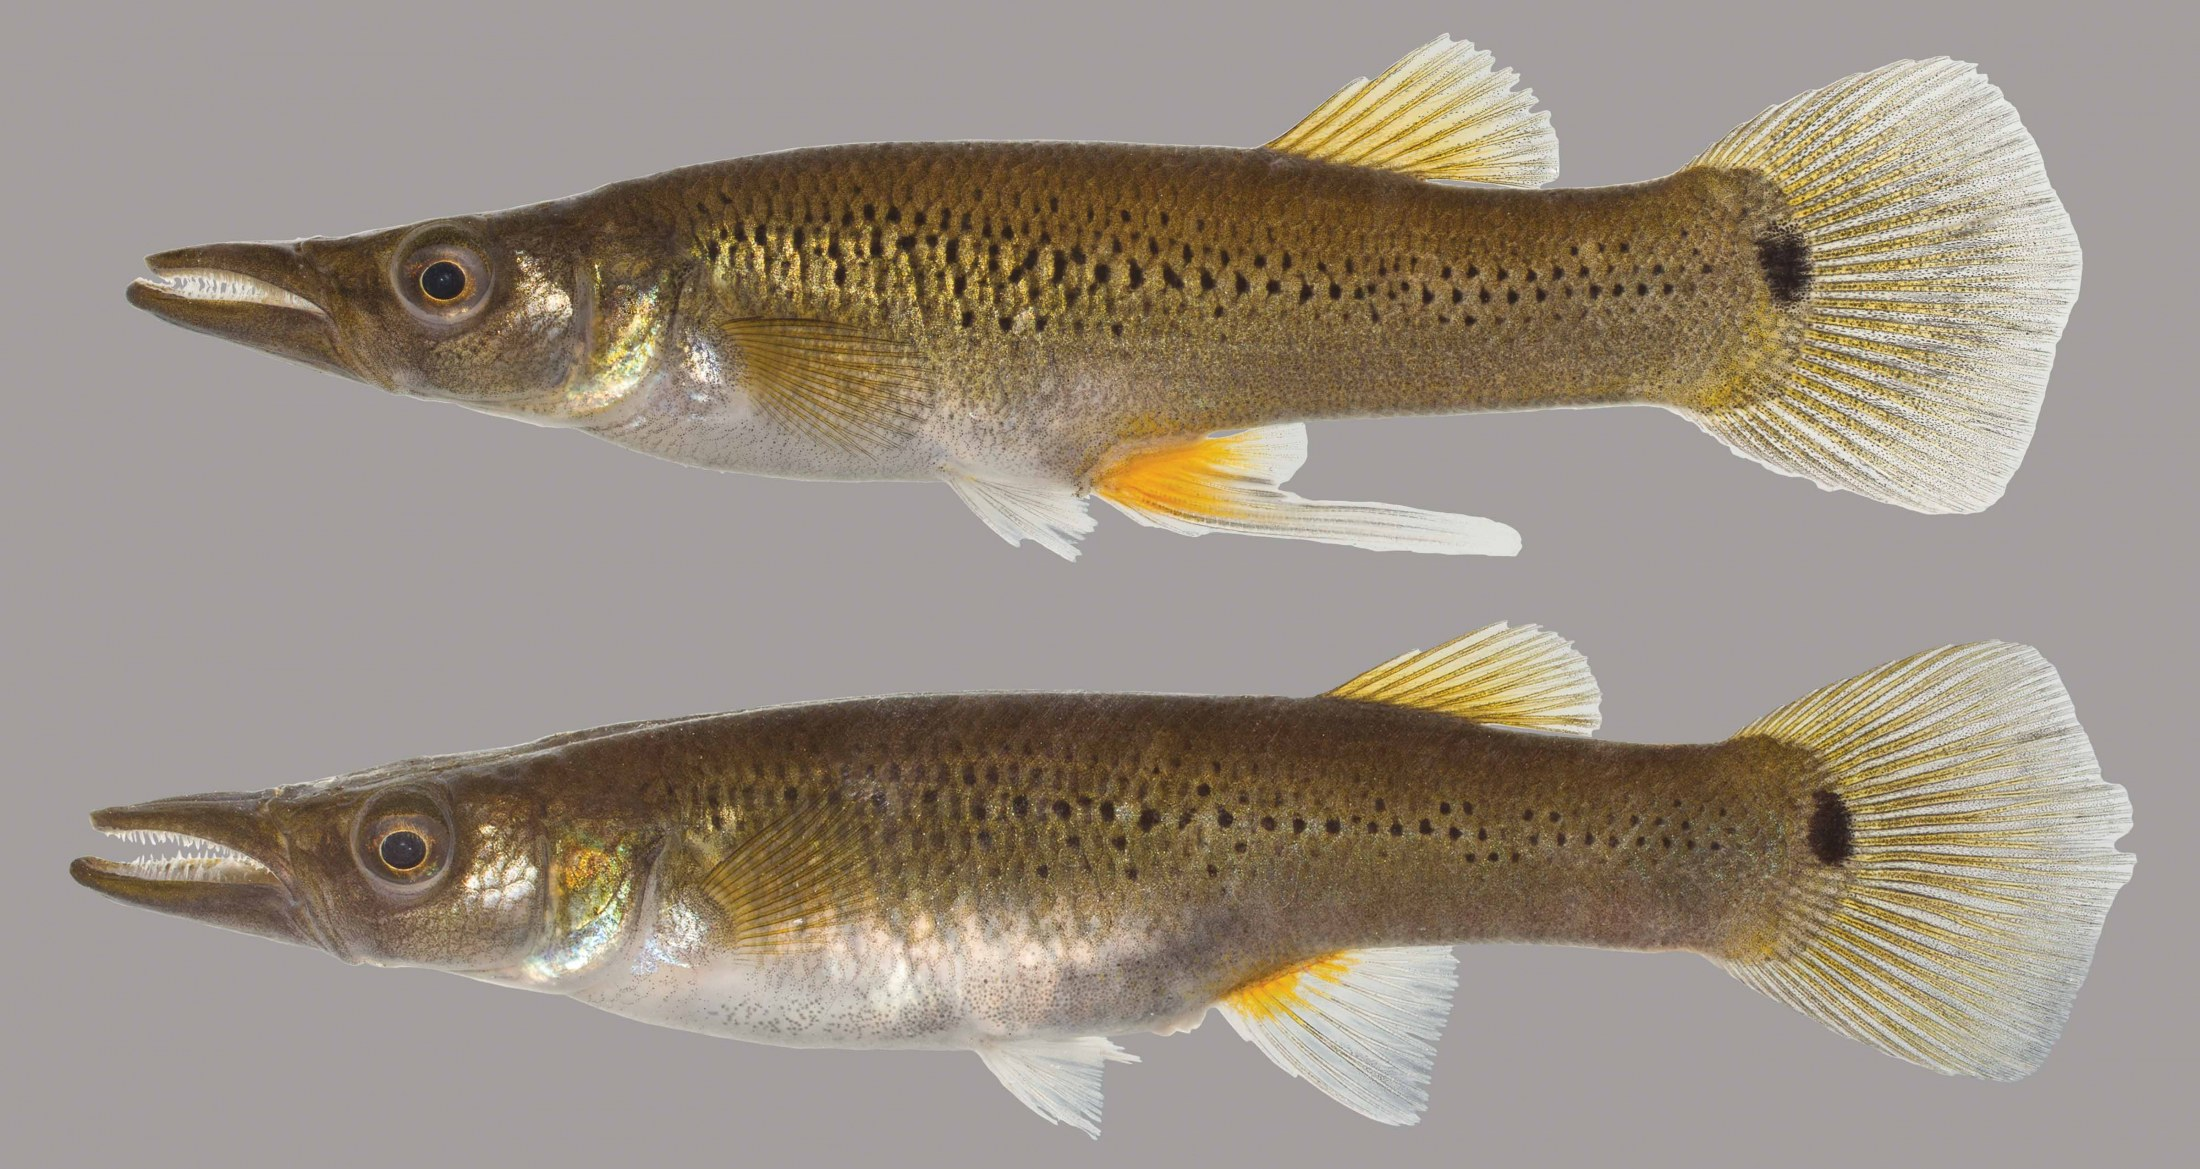 Lateral view of pike killifish